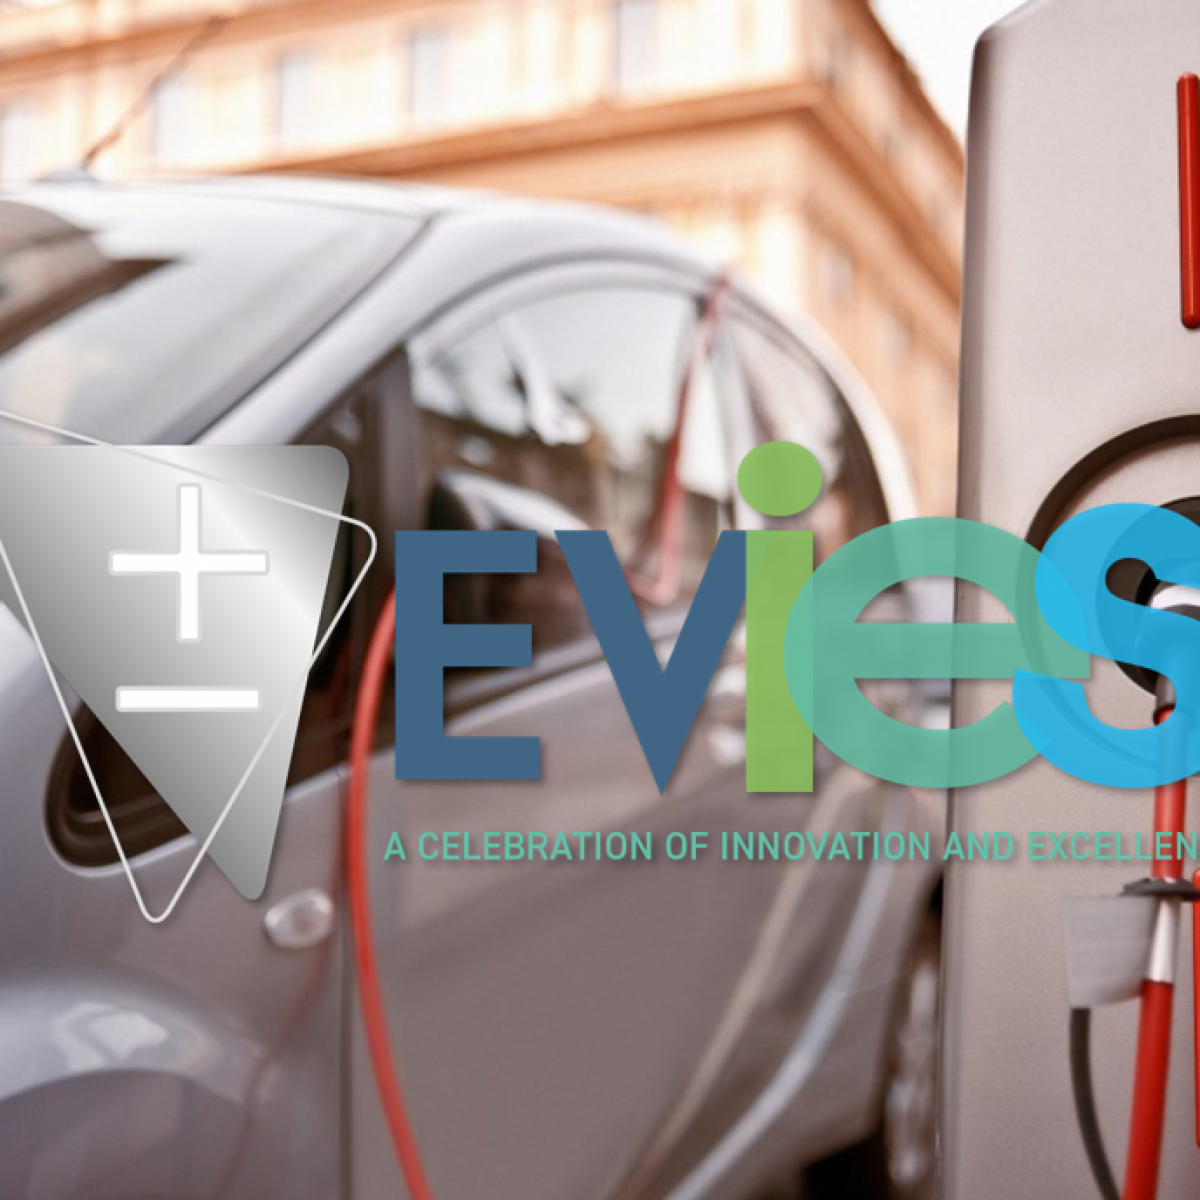 The Isle of Man has committed to building an all-island EV charging network by 2030.